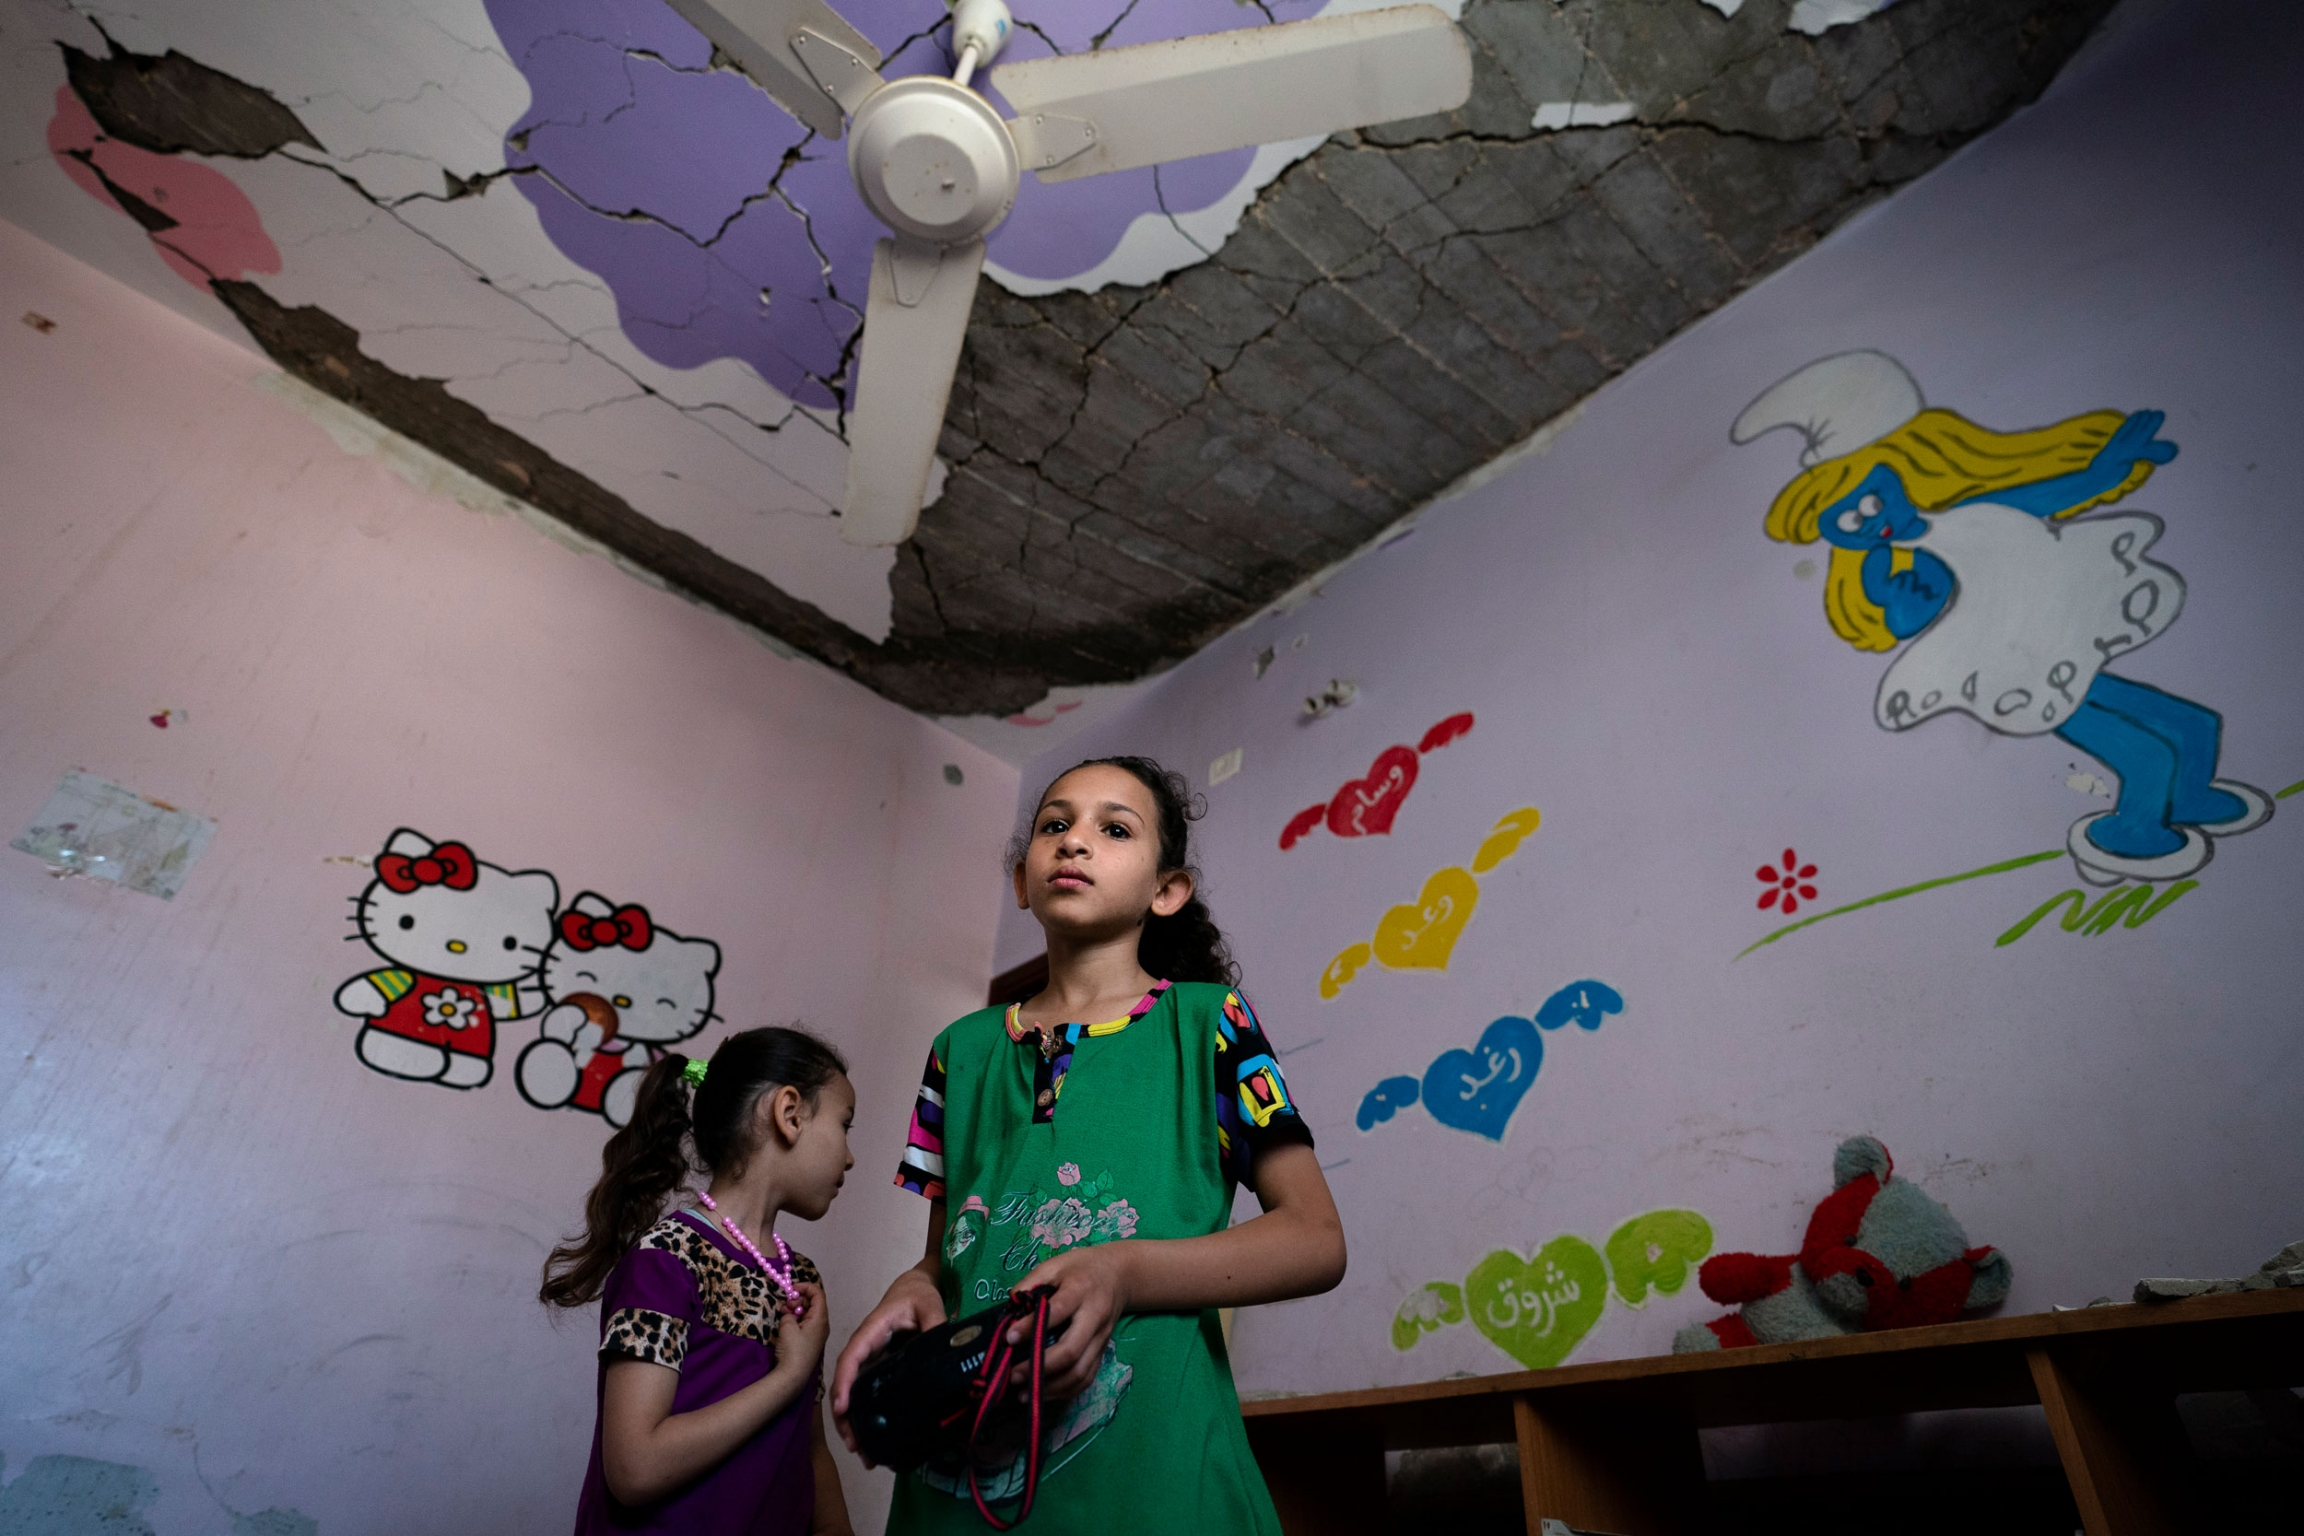 Two young girls are shown in a room with a smurf cartoon on the wall and a damaged ceiling.